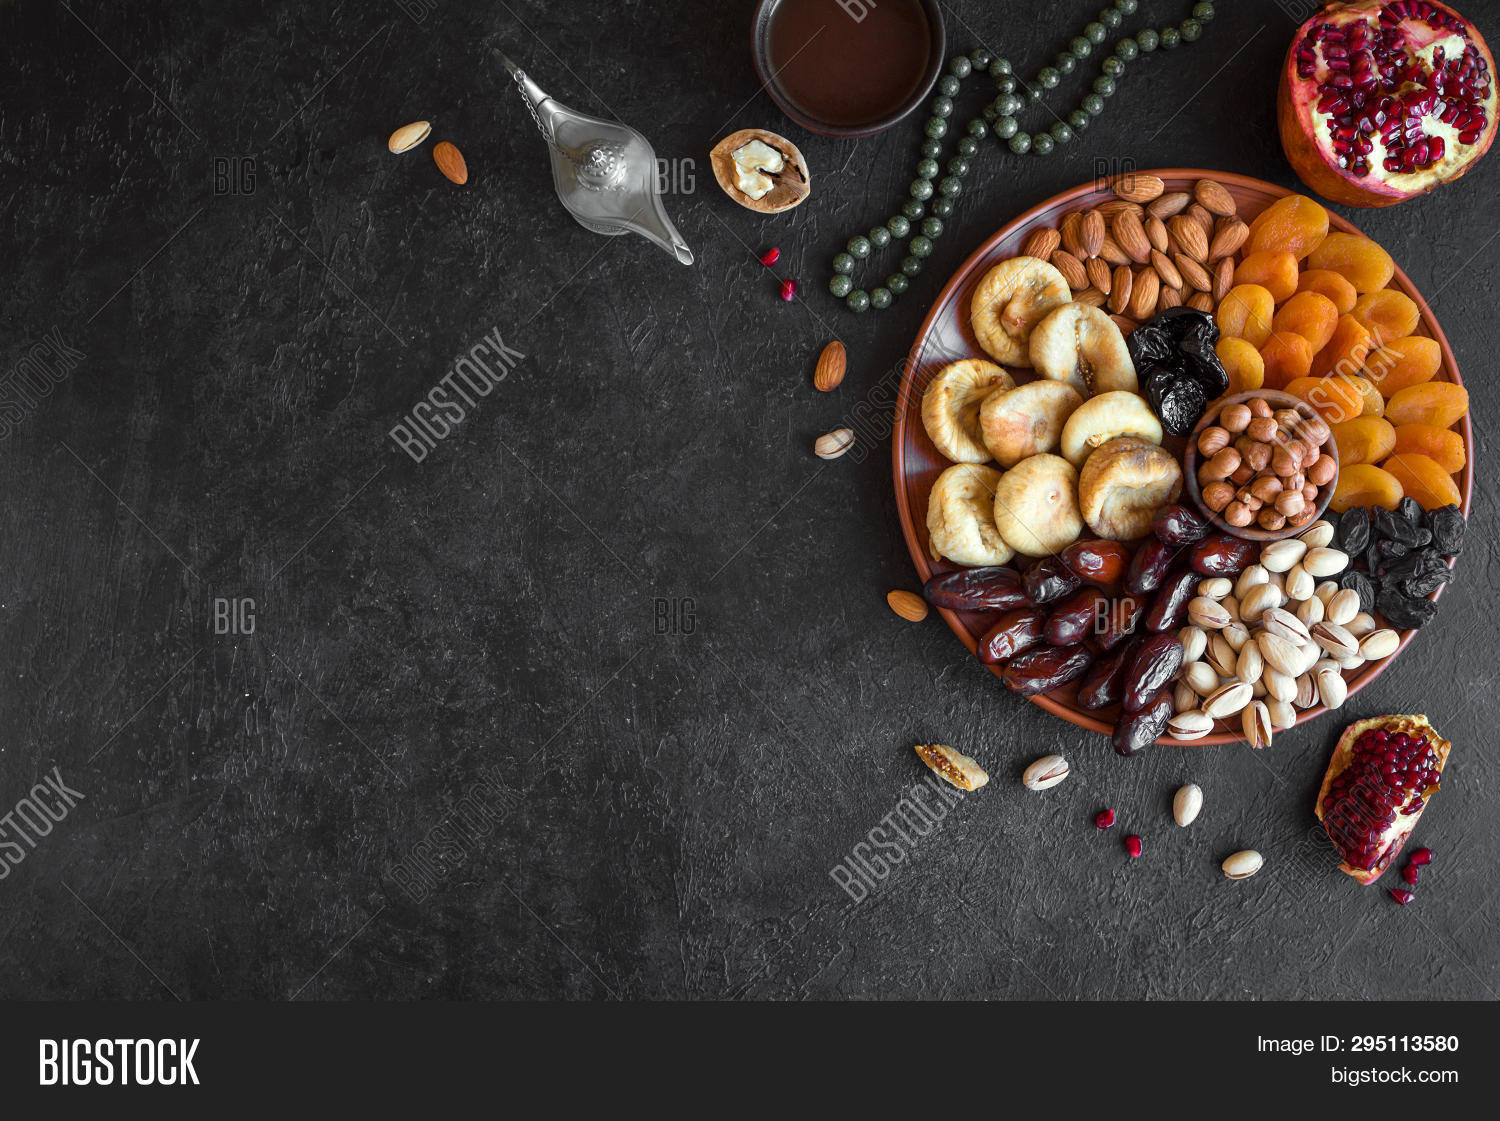 Islam,Muslim,almonds,apricots,arabic,background,beads,bishvat,black,coffee,copy,dates,dessert,dried,dry,eastern,fasting,figs,food,fruit,hazelnuts,holidays,iftar,ifthar,judaic,kareem,latern,middle,natural,nut,nutrient,oil,organic,pistachios,prunes,quranic,raisins,ramadan,ripe,rosary,rustic,snack,space,sweet,traditional,turkish,vegetarian